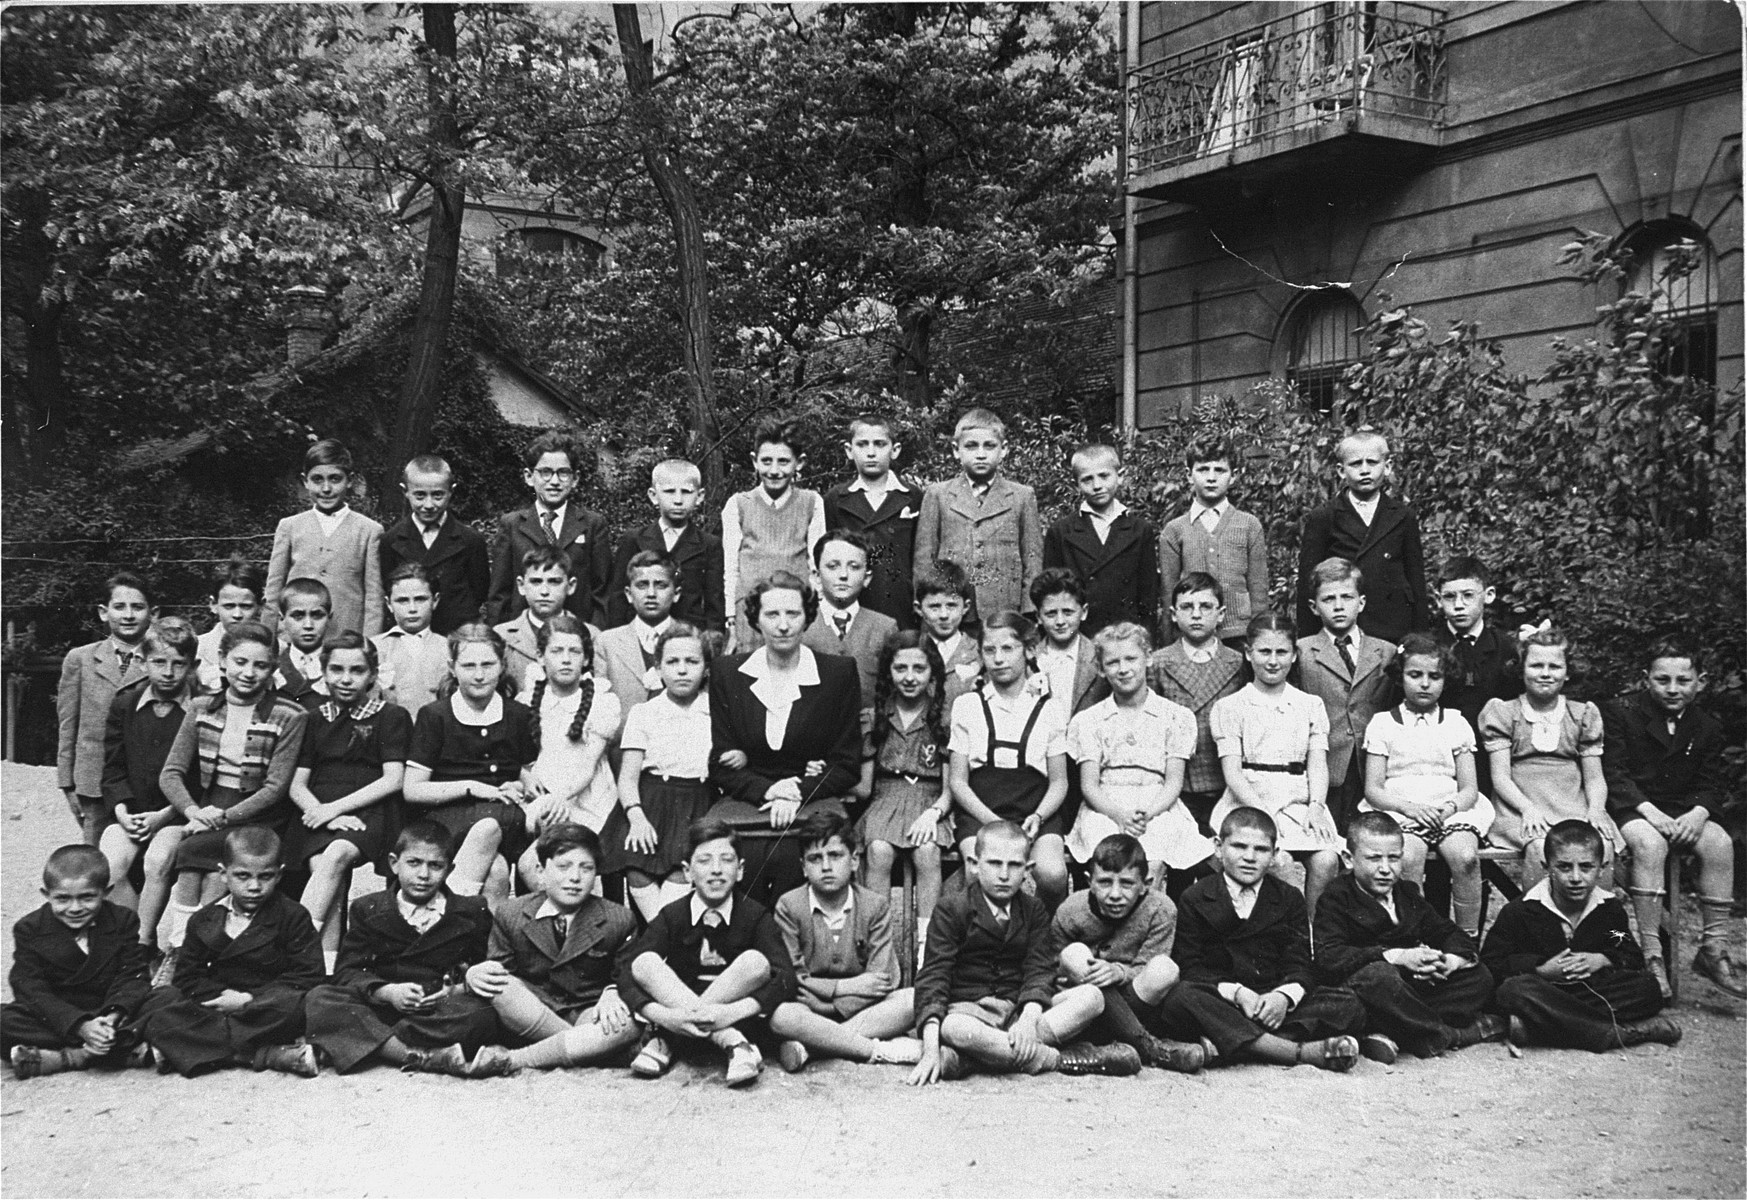 Class photograph of the second grade at the Jewish Boys' Orphanage School of Budapest (Zsido Fiu Arvahaz), a Jewish primary school attended by both orphaned and non-orphaned children.